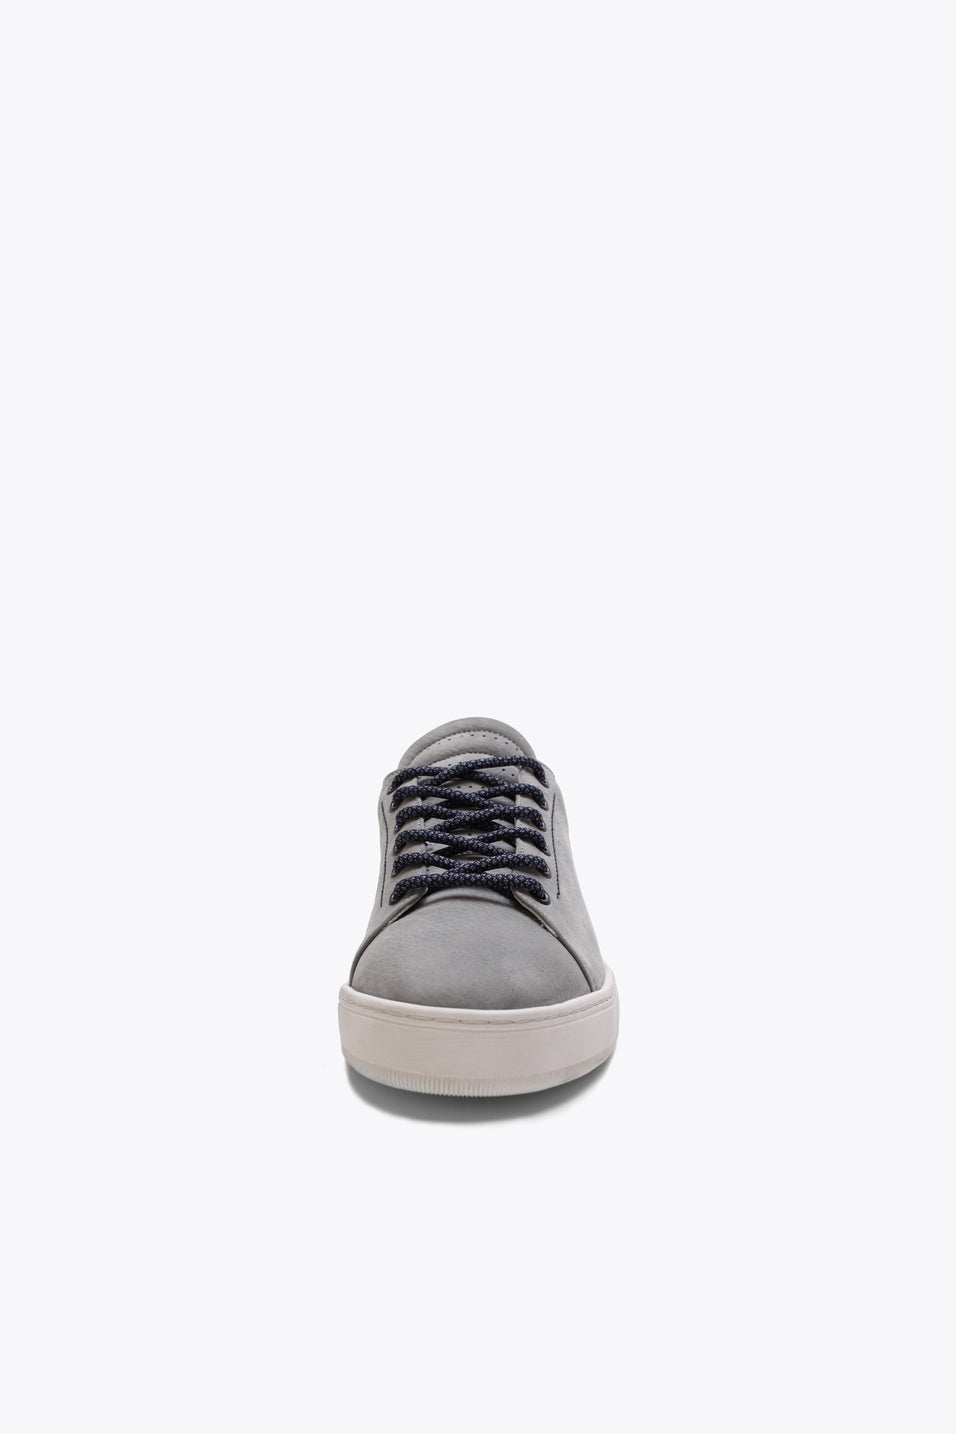 Men Low Cup Parallel - Grey/Navy